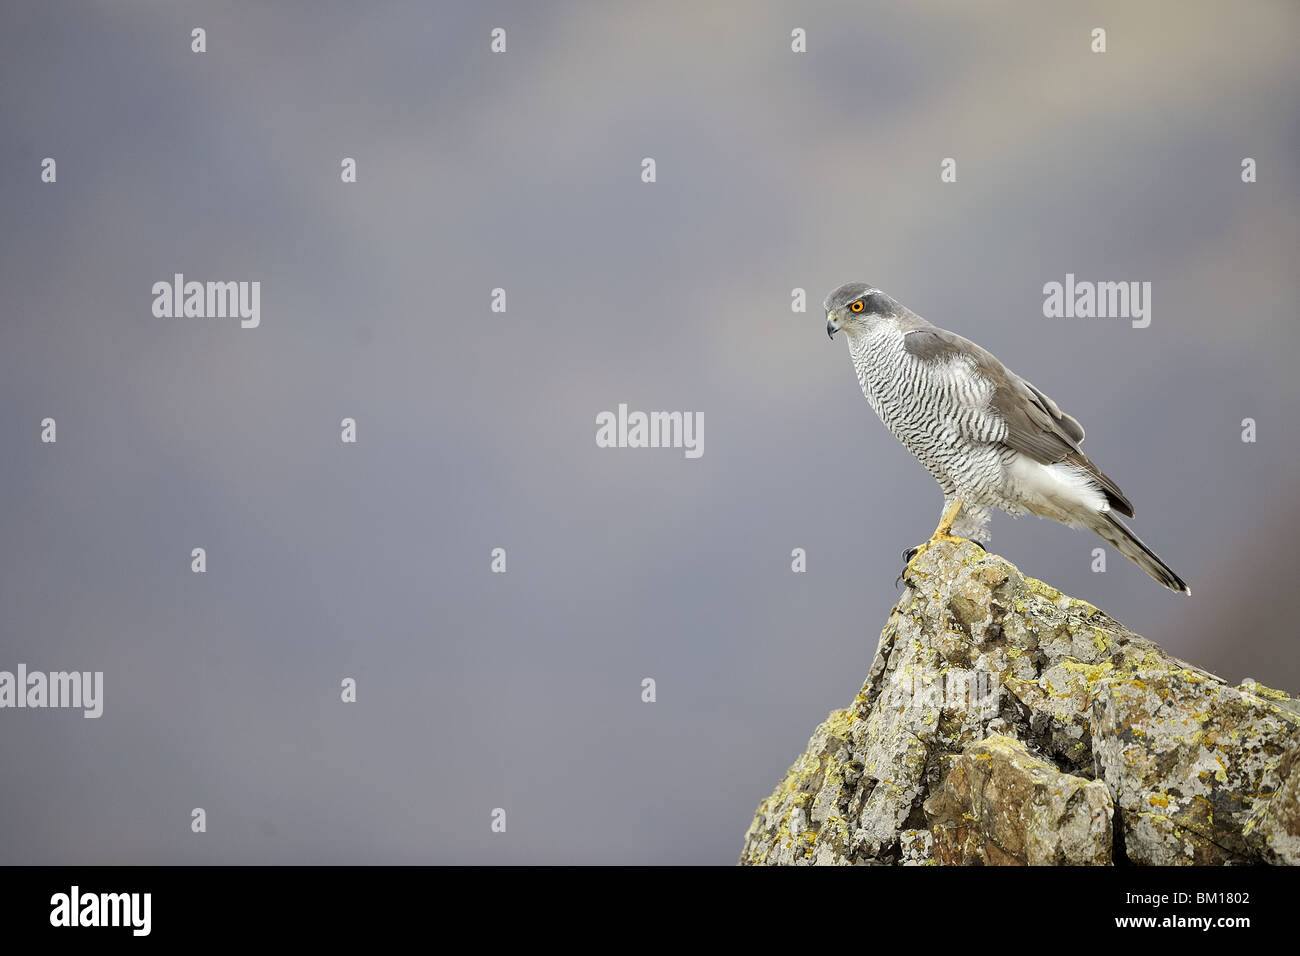 Northern Goshawk standing on a rock in winter - Stock Image